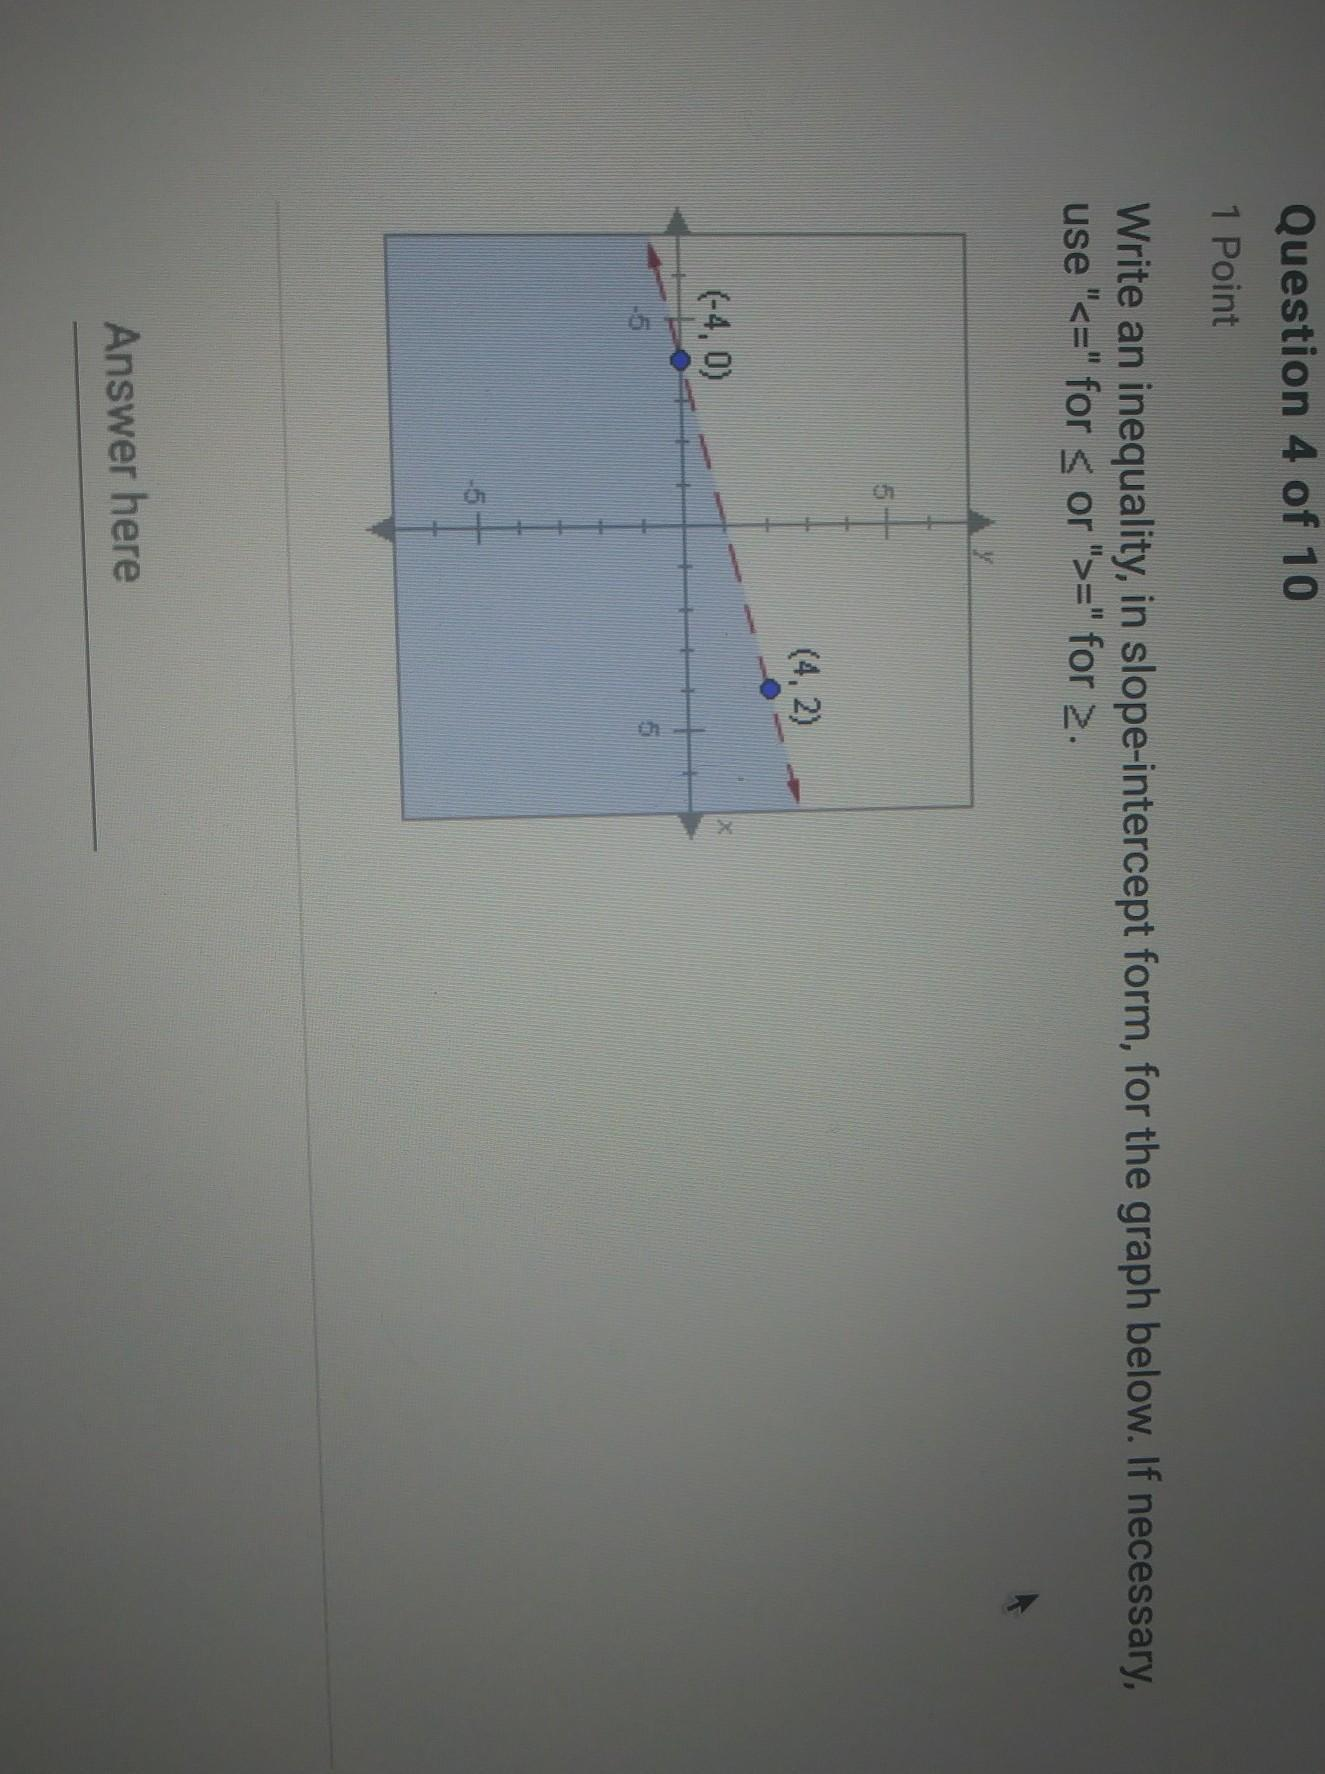 Please Help Write An Inequality In Slope Intercept Form